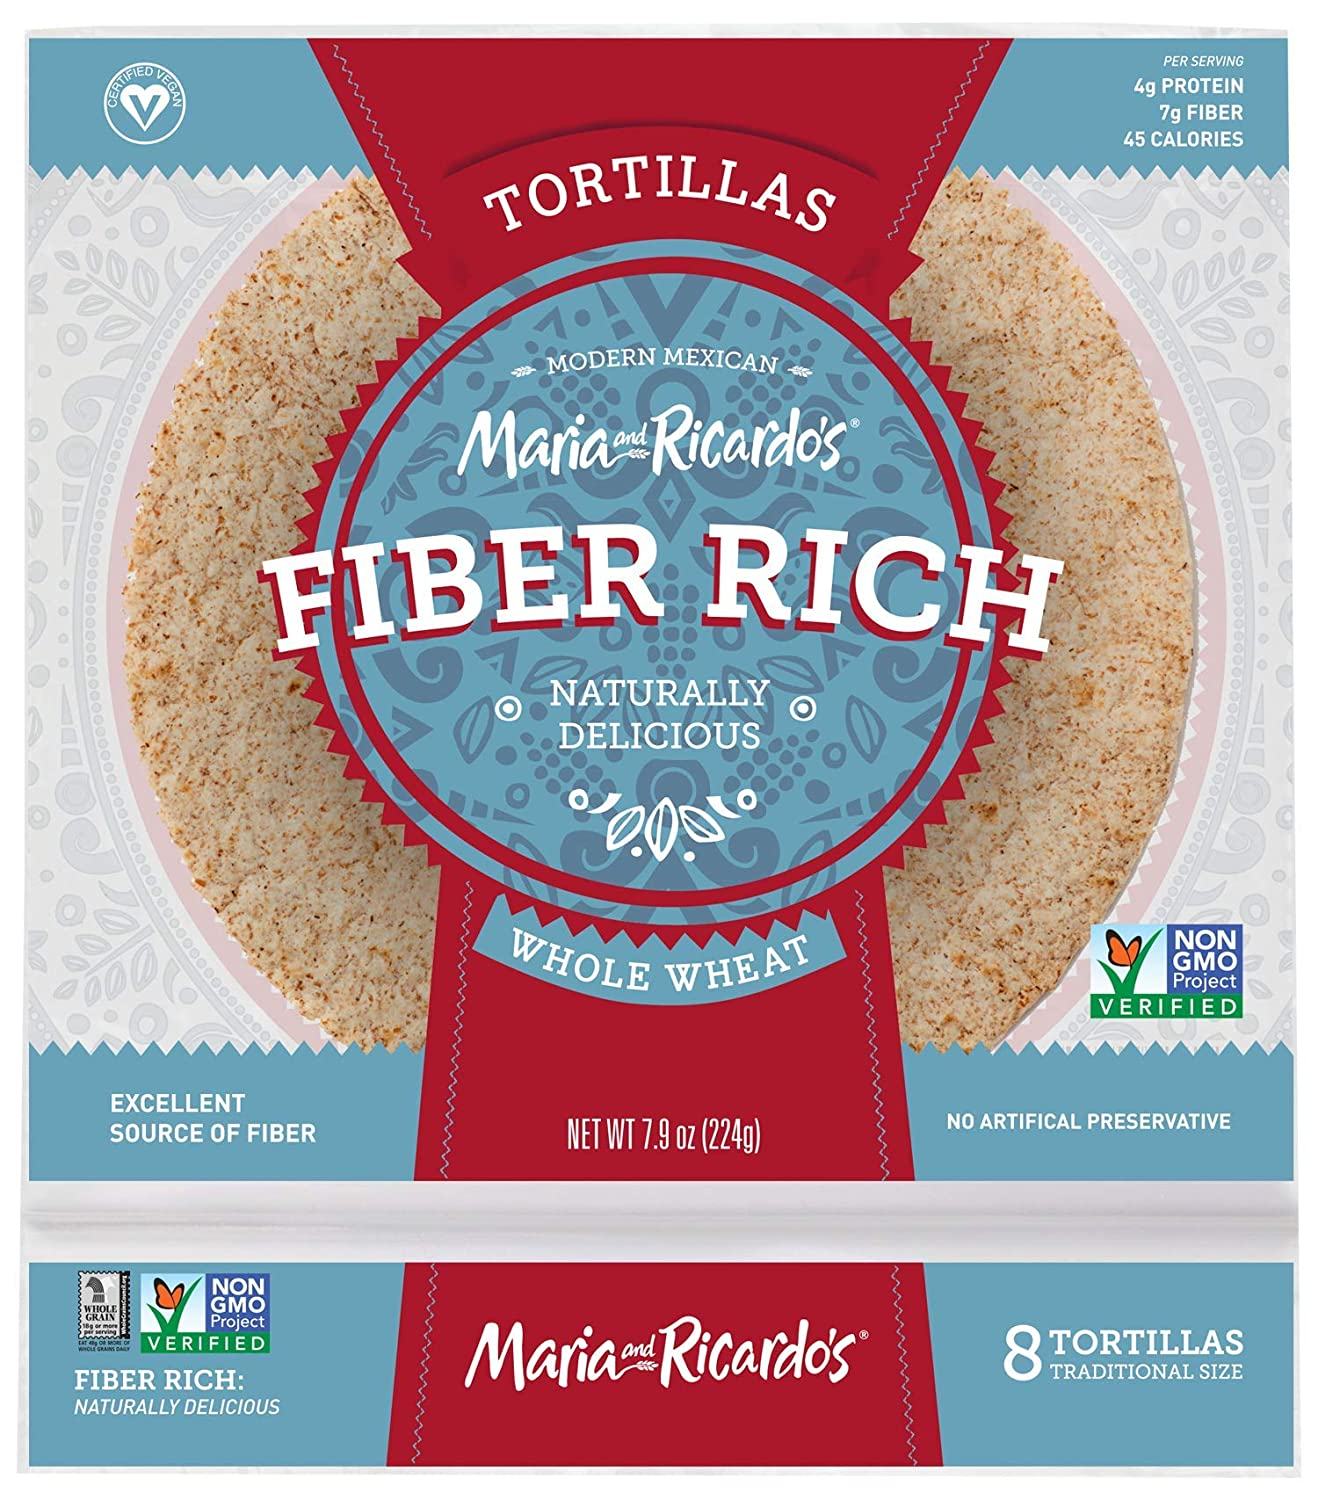 Maria and Ricardos Low Carb Low Fat Tortilla, 6 inch - 8 per pack - 16 packs per case.